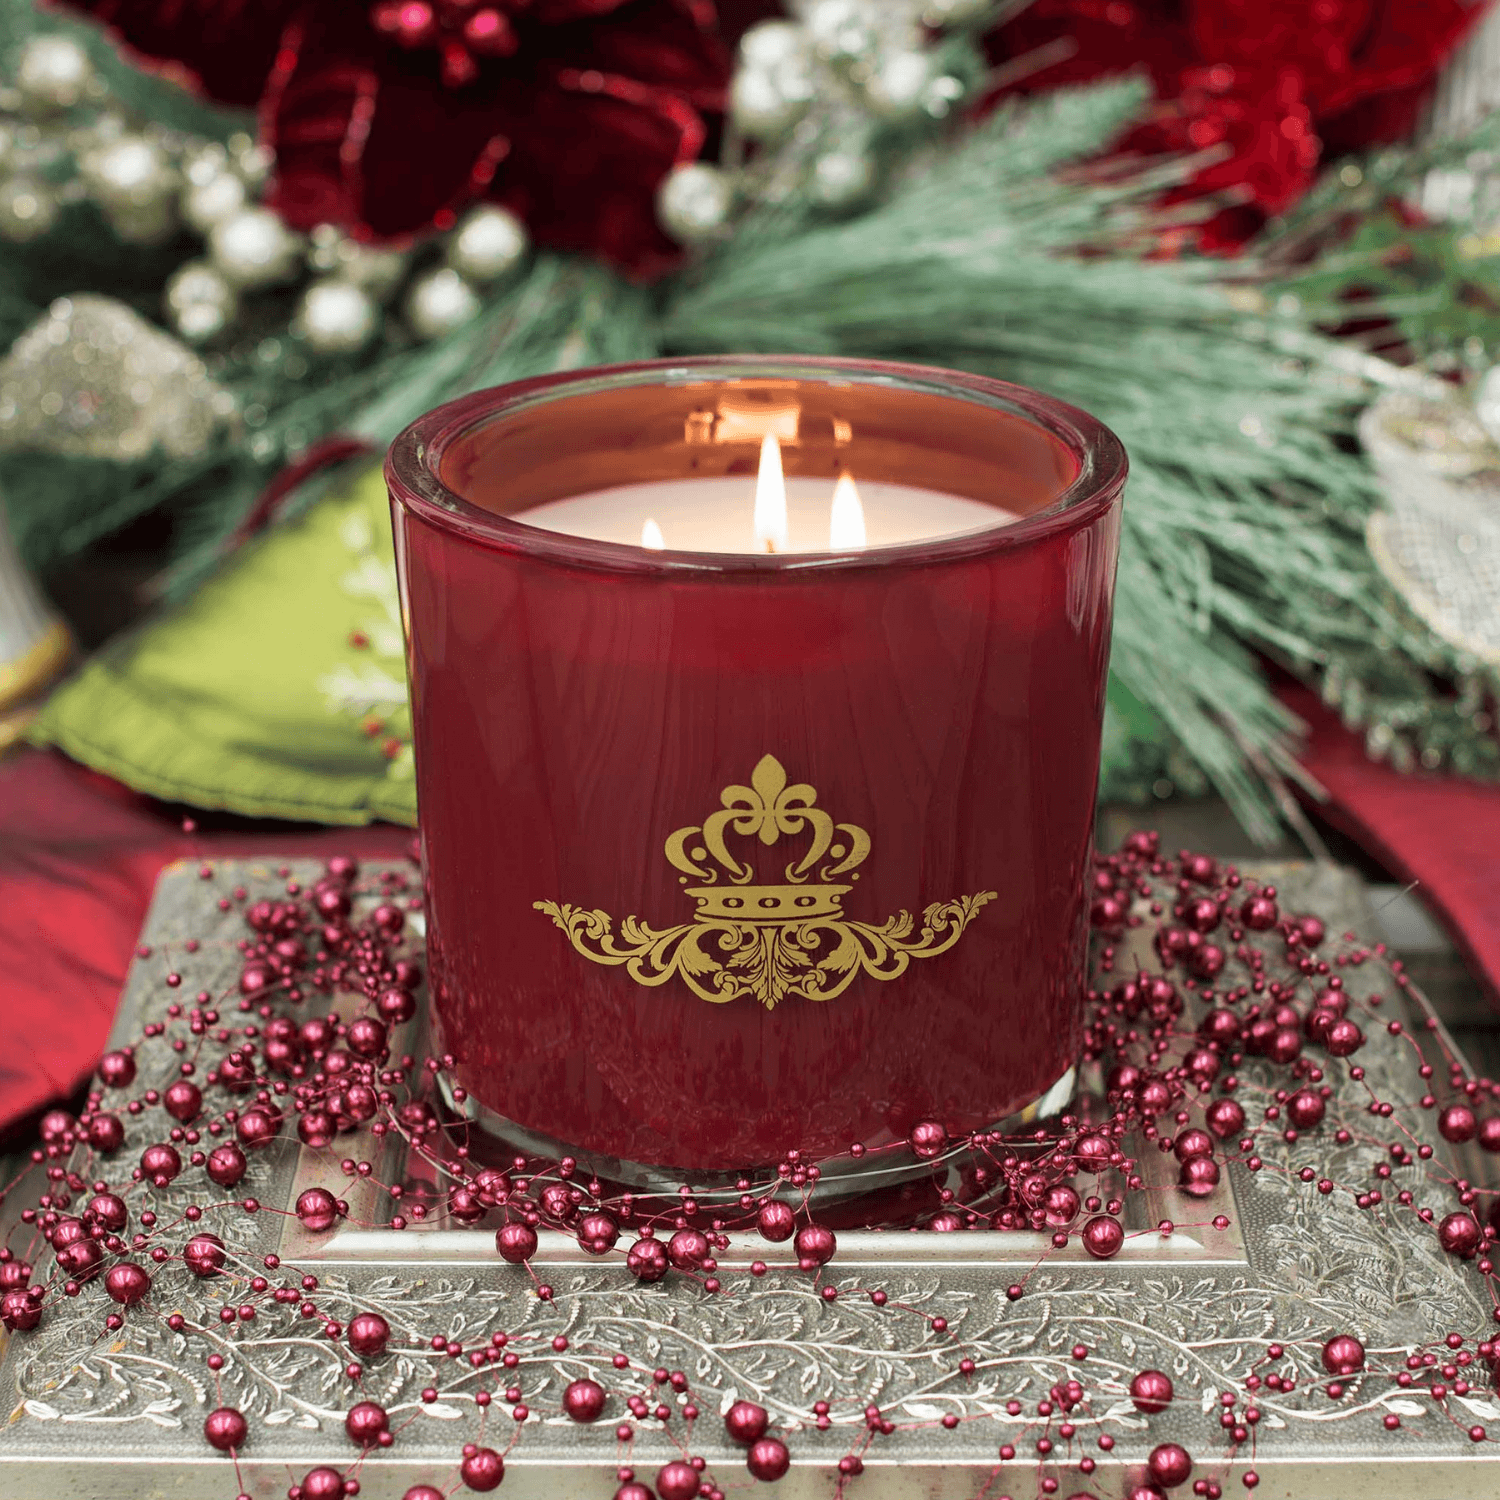 Bourbon Street Blues Luxury 32oz Burgundy Glass Tumbler Candle Luxury Candles Candlemart.com $ 19.99